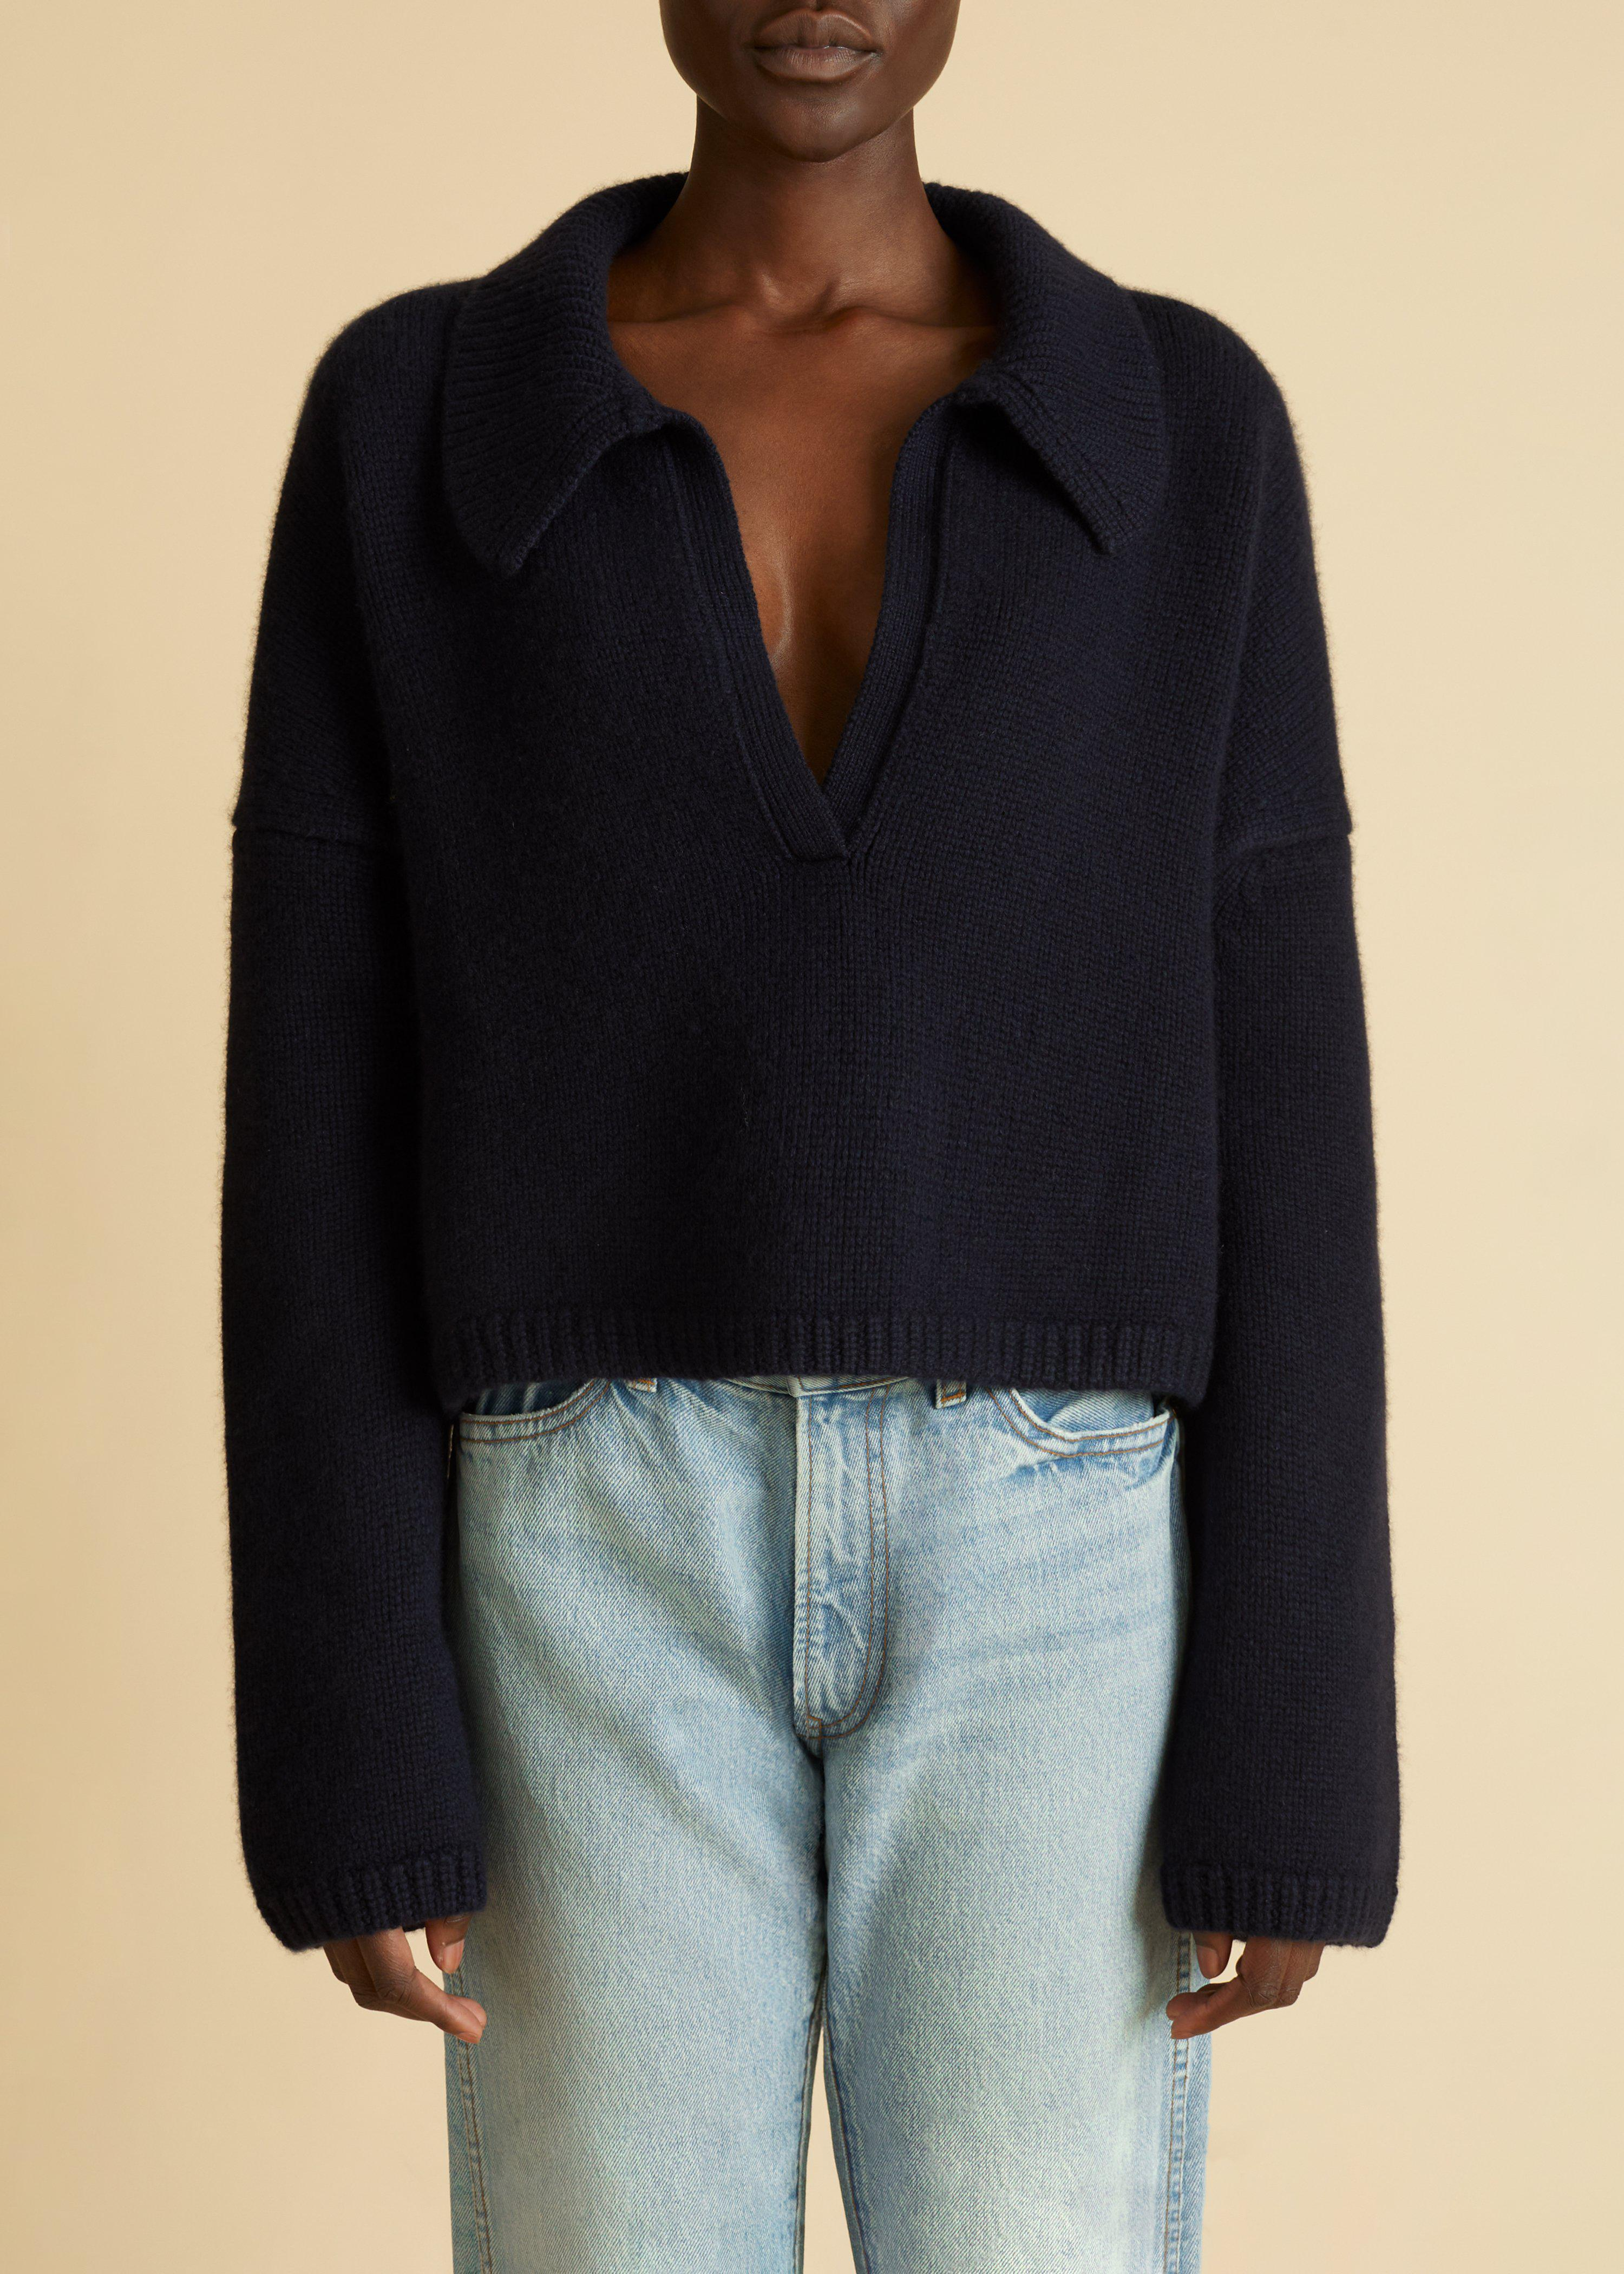 The Shelly Sweater in Navy